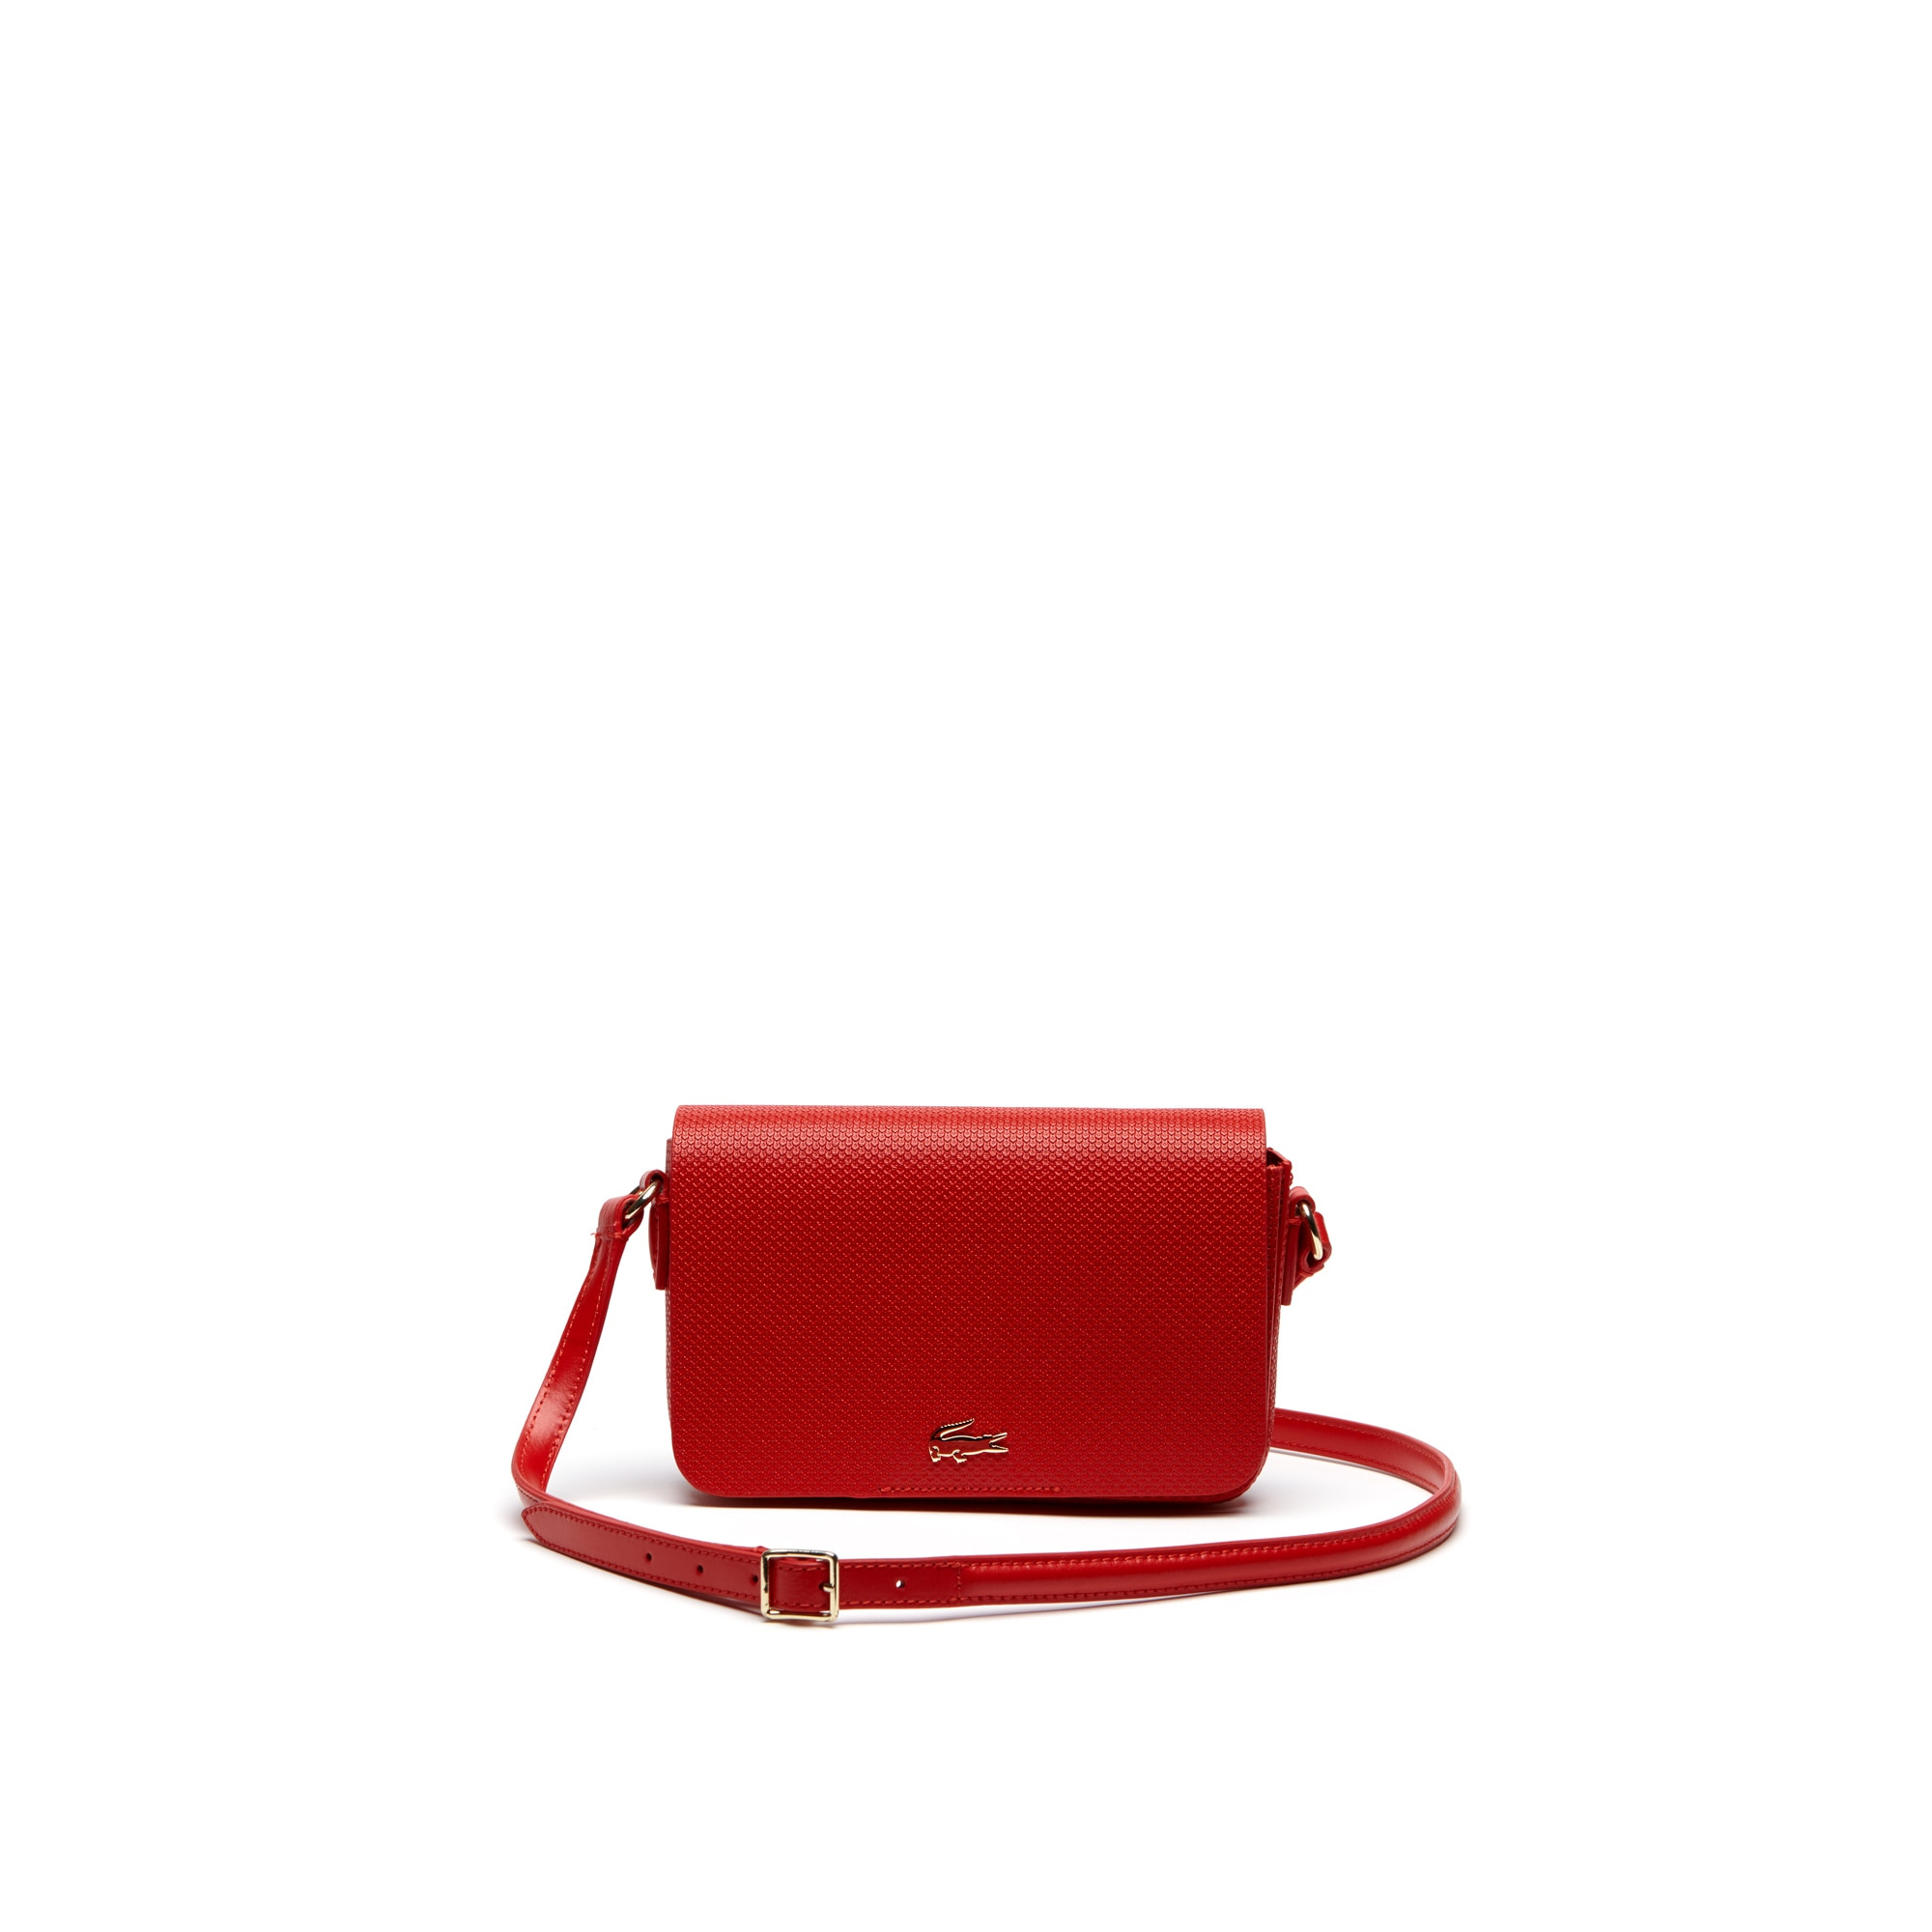 Women's Chantaco Piqué Leather Crossover Bag